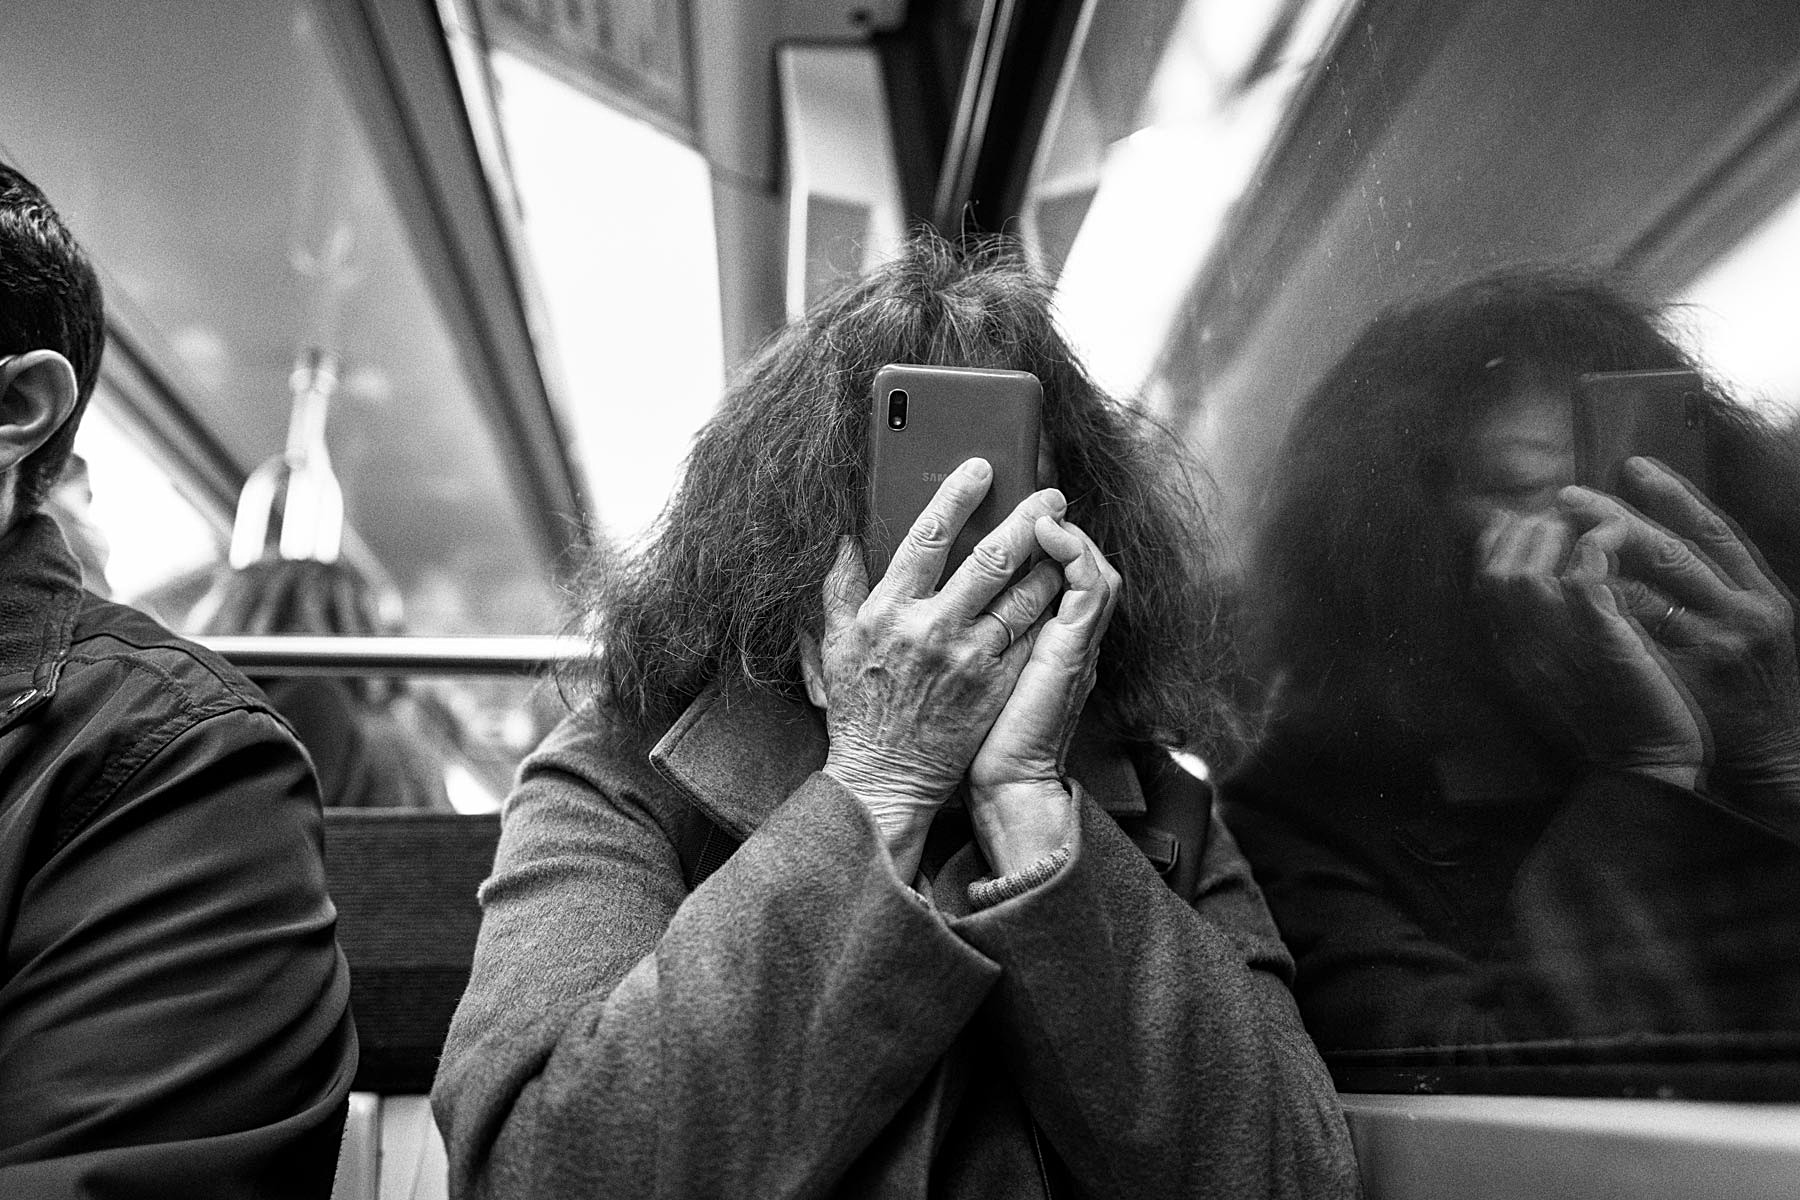 in the paris metro, a woman is on the phone, her smartphone is very close to her face, nomophobic phone addiction, photo laurent delhourme